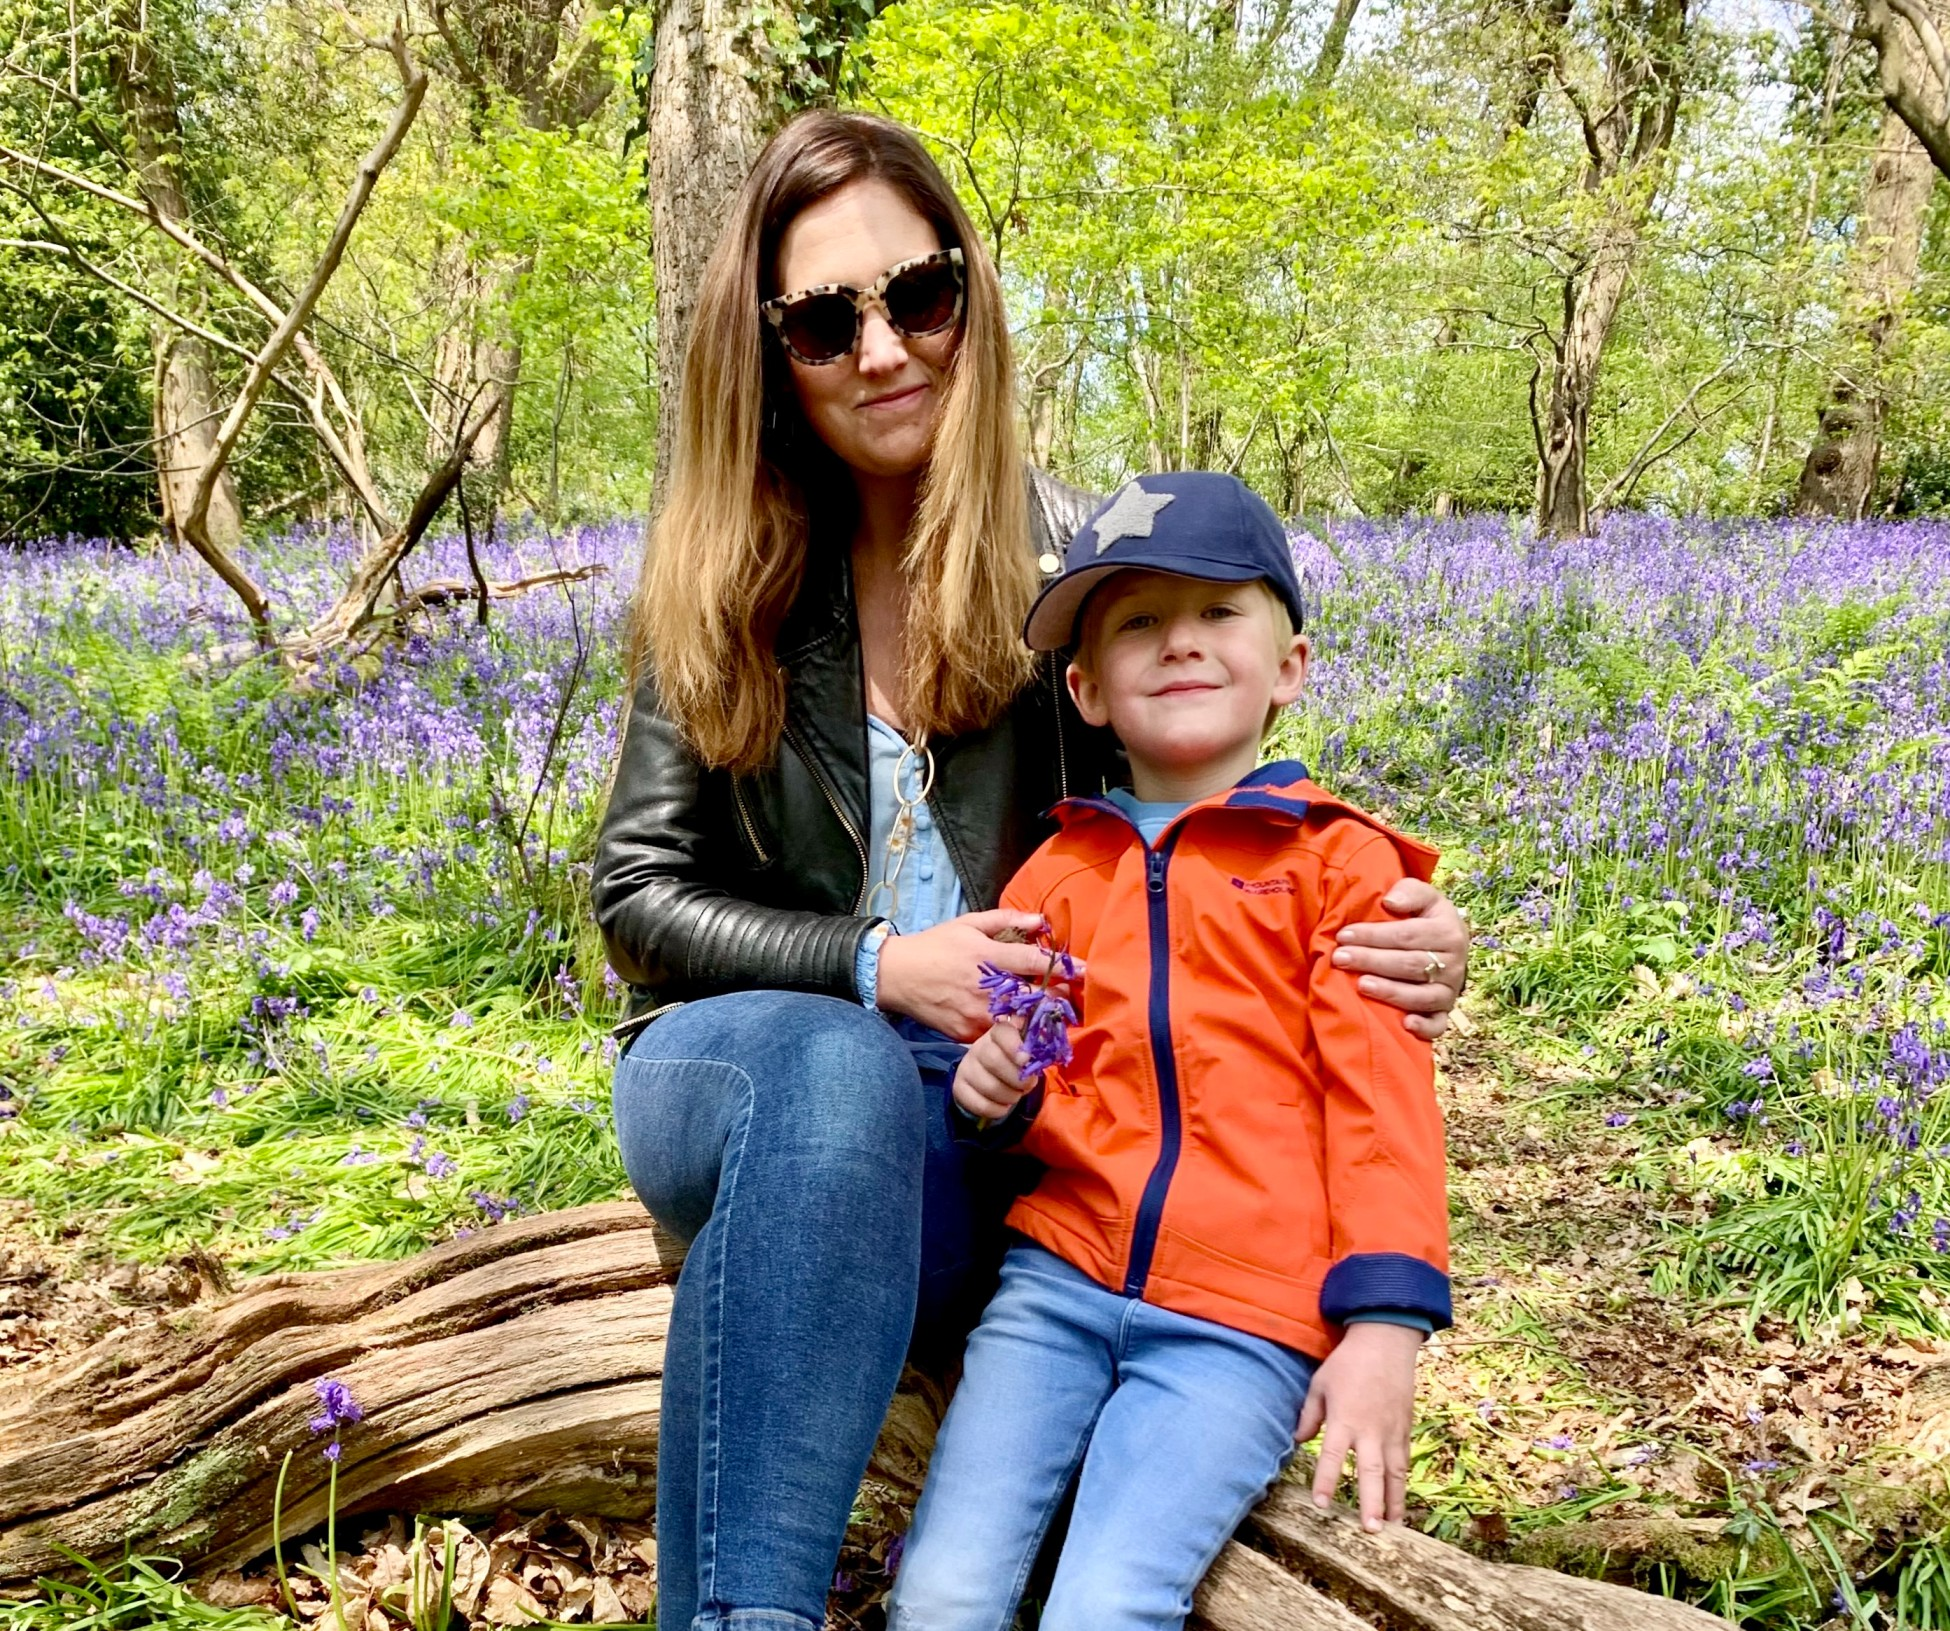 20 questions with single mum Emily